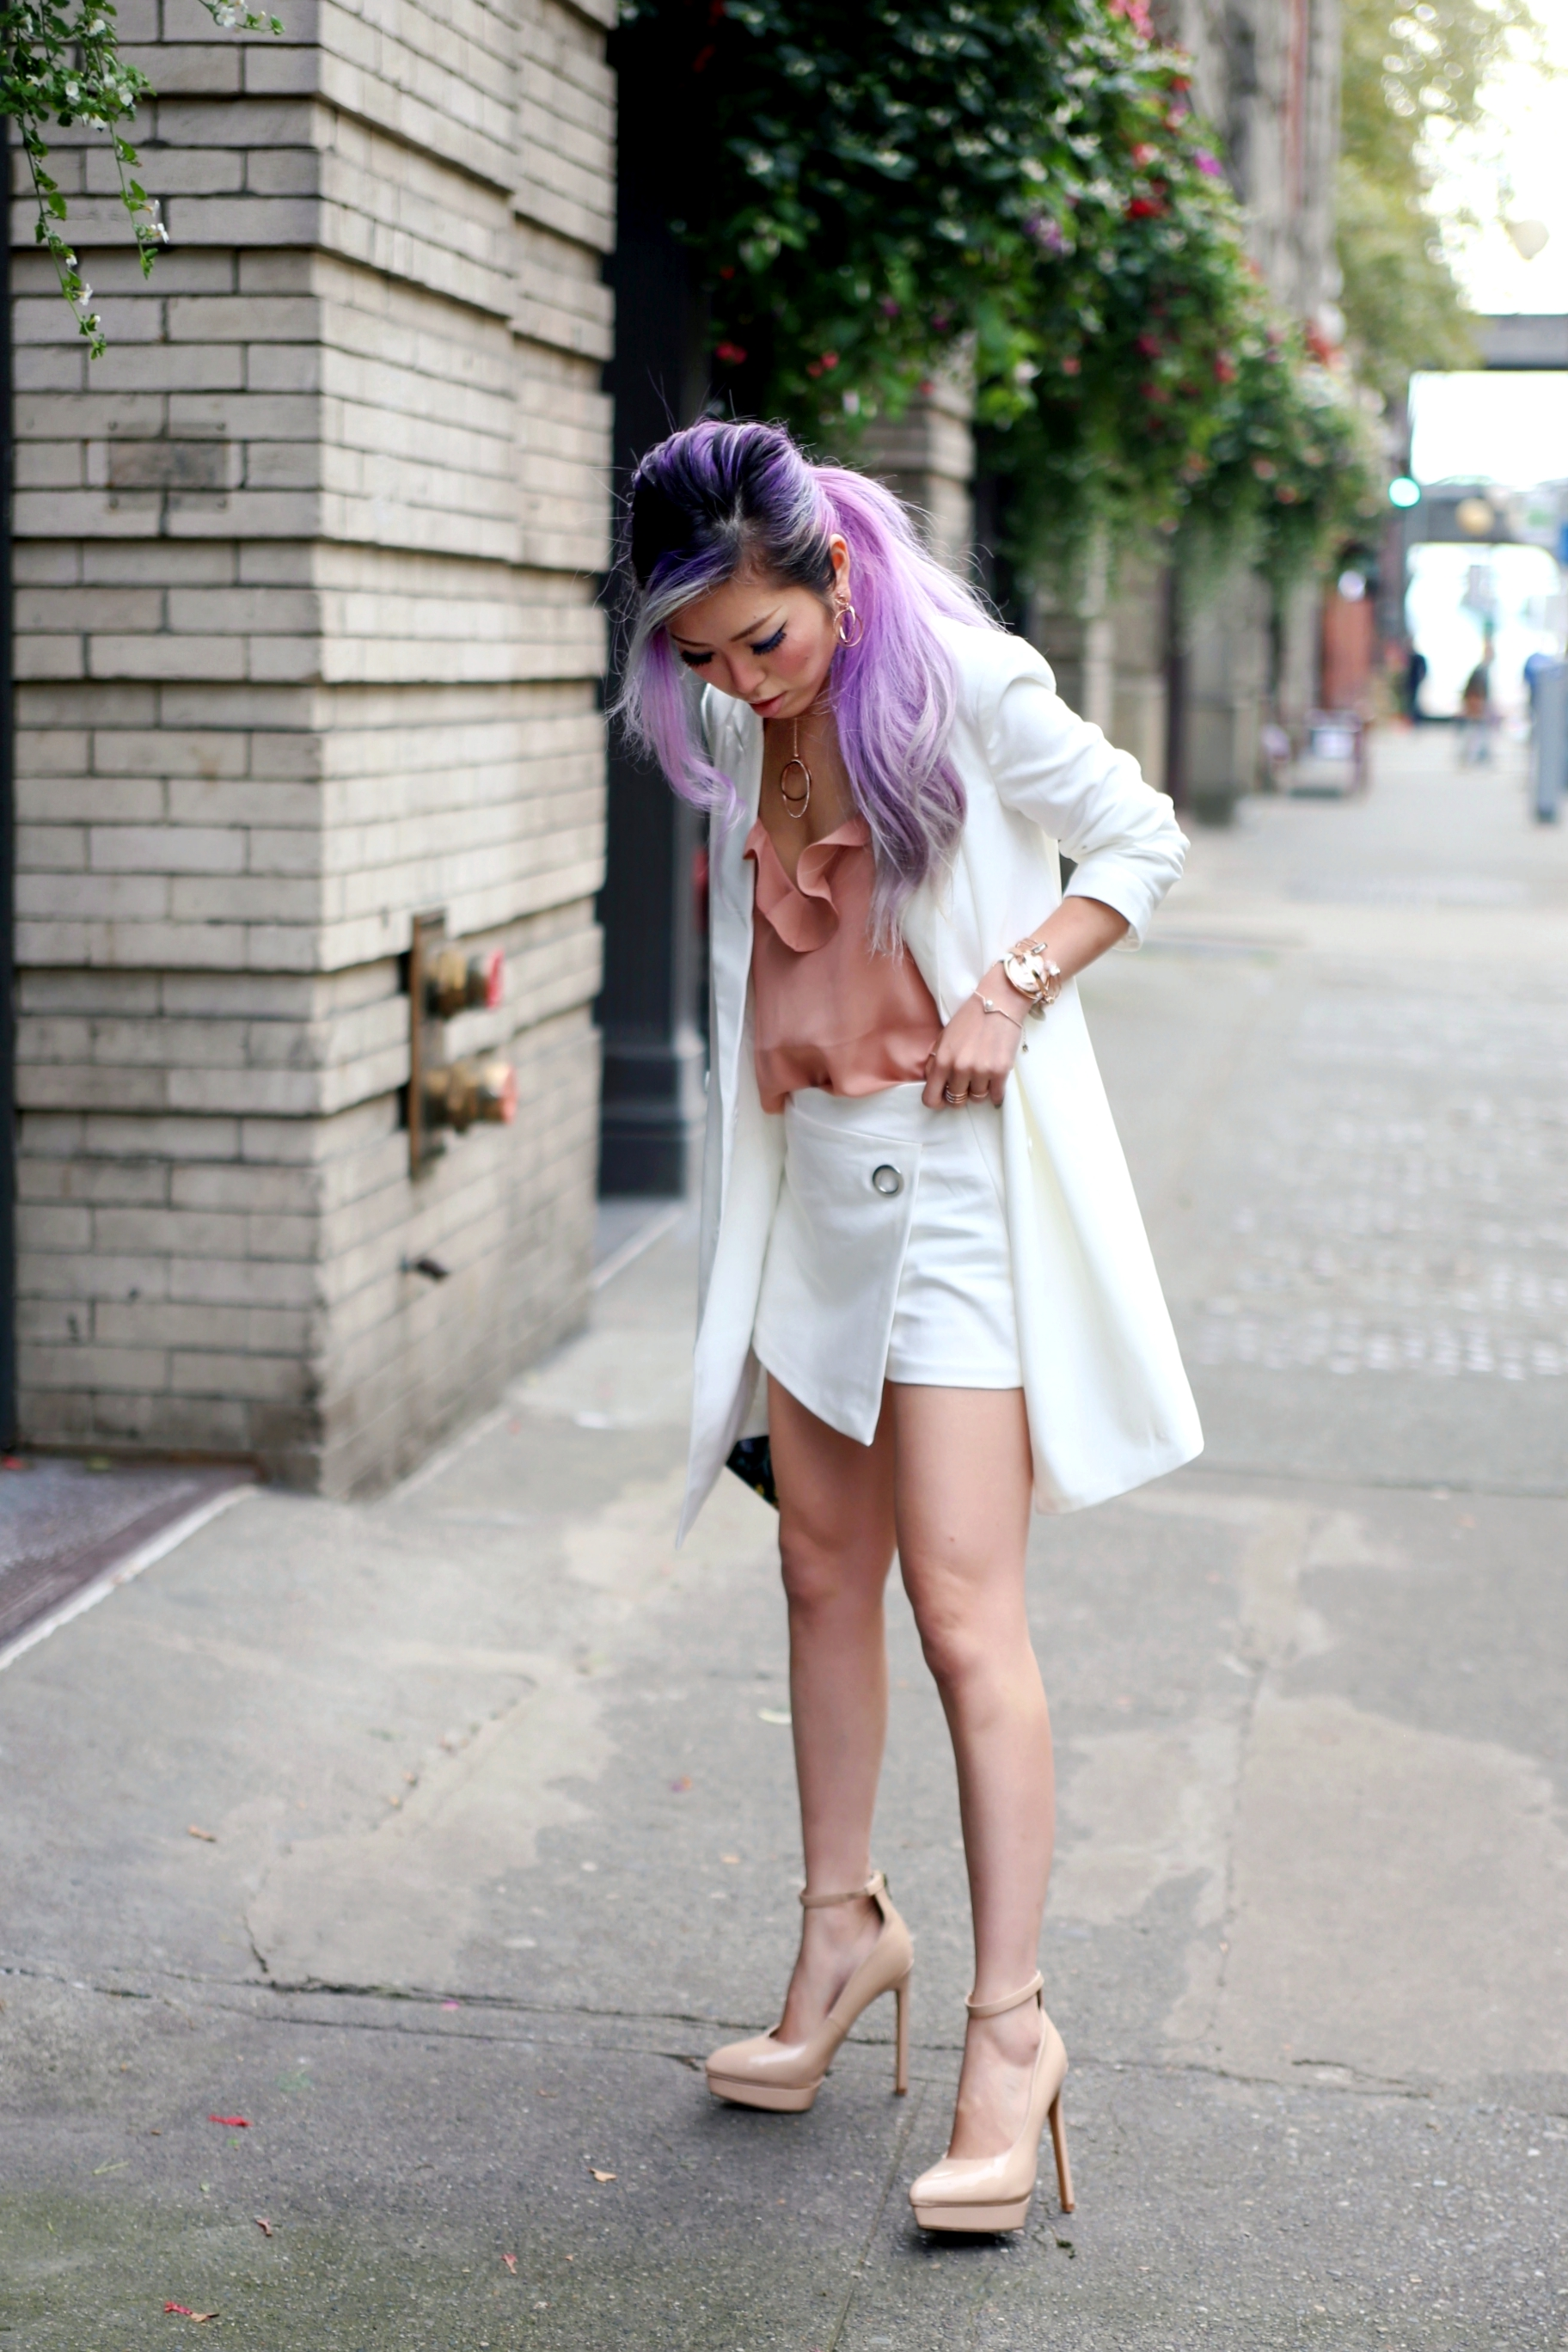 Swarovski Crystaldust Bangle Double White, Forever 21 Mini Blazer Dress & Chiffon Cami_Zara White CROSSOVER CULOTTES_Alice + Olivia Printed Leather Clutch_Shoedazzle Nude Pumps_Swarovski Flash Necklace & Flashed Pierced Earrings & Crystalline Oval White Tone Watch_Aikas Love Closet_Seattle Fashion Blogger_Japan_Lavender hair_Purple hair